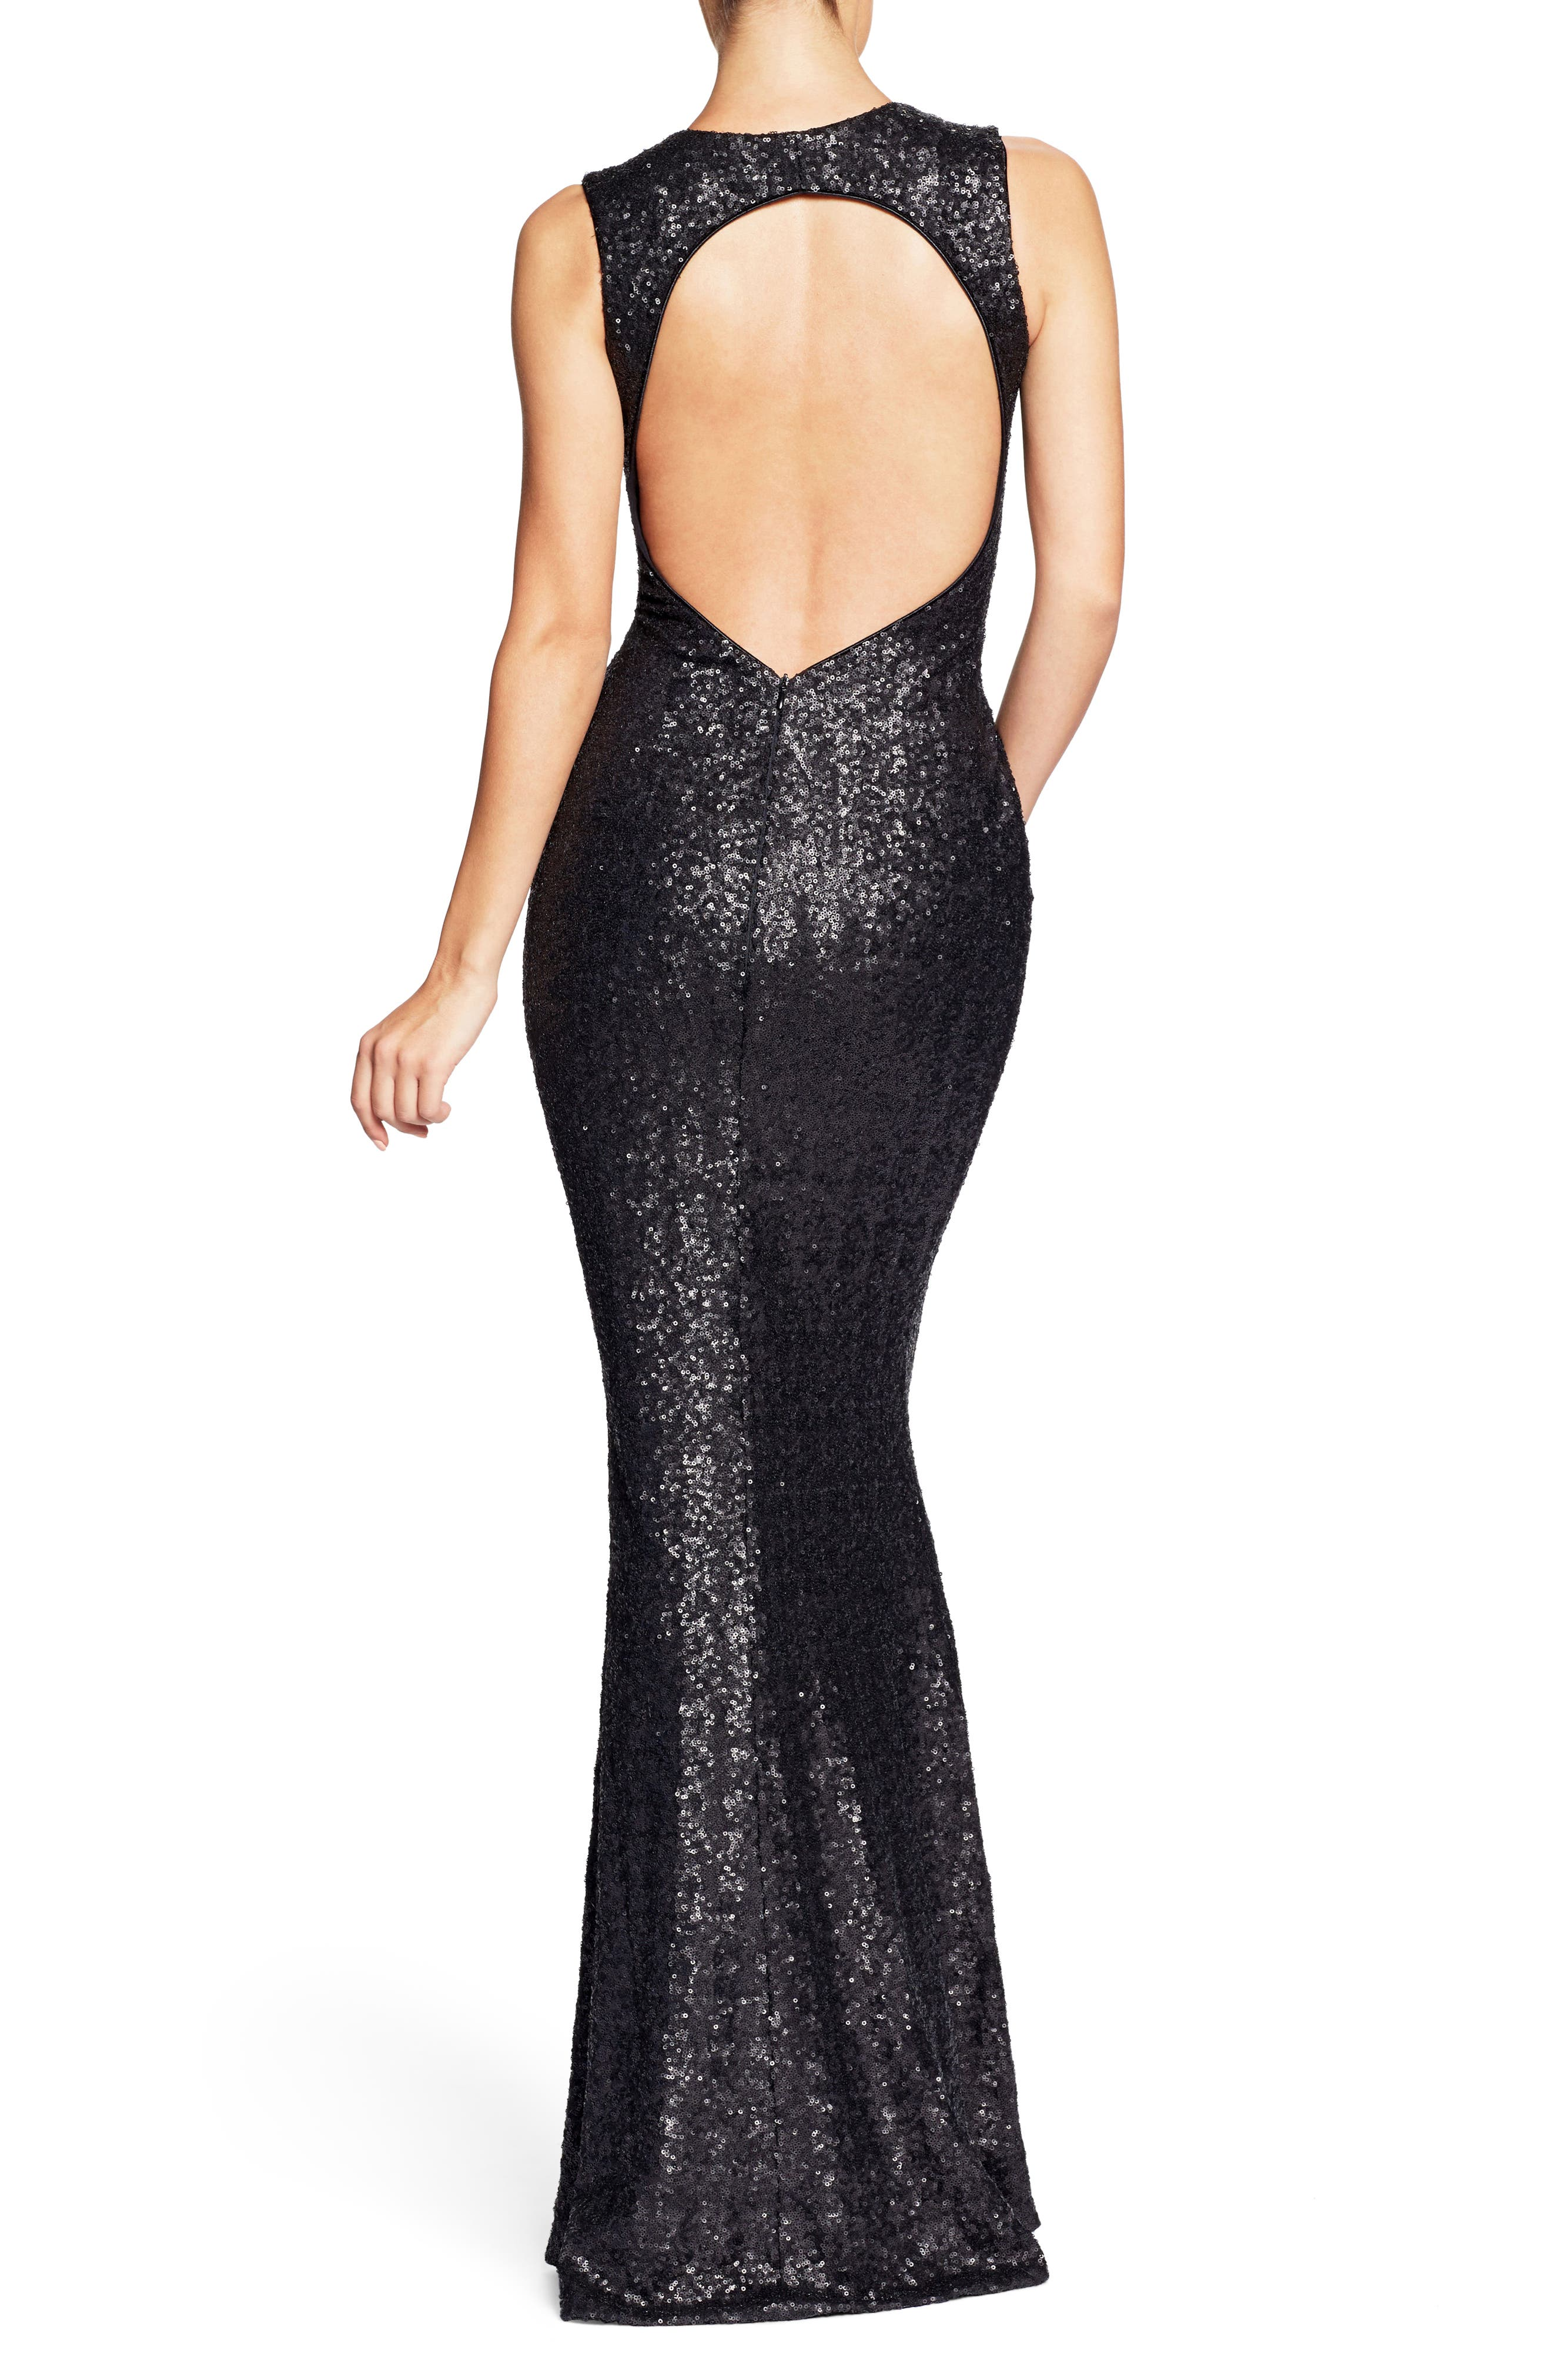 DRESS THE POPULATION, Karina Plunge Mermaid Gown, Alternate thumbnail 2, color, 018